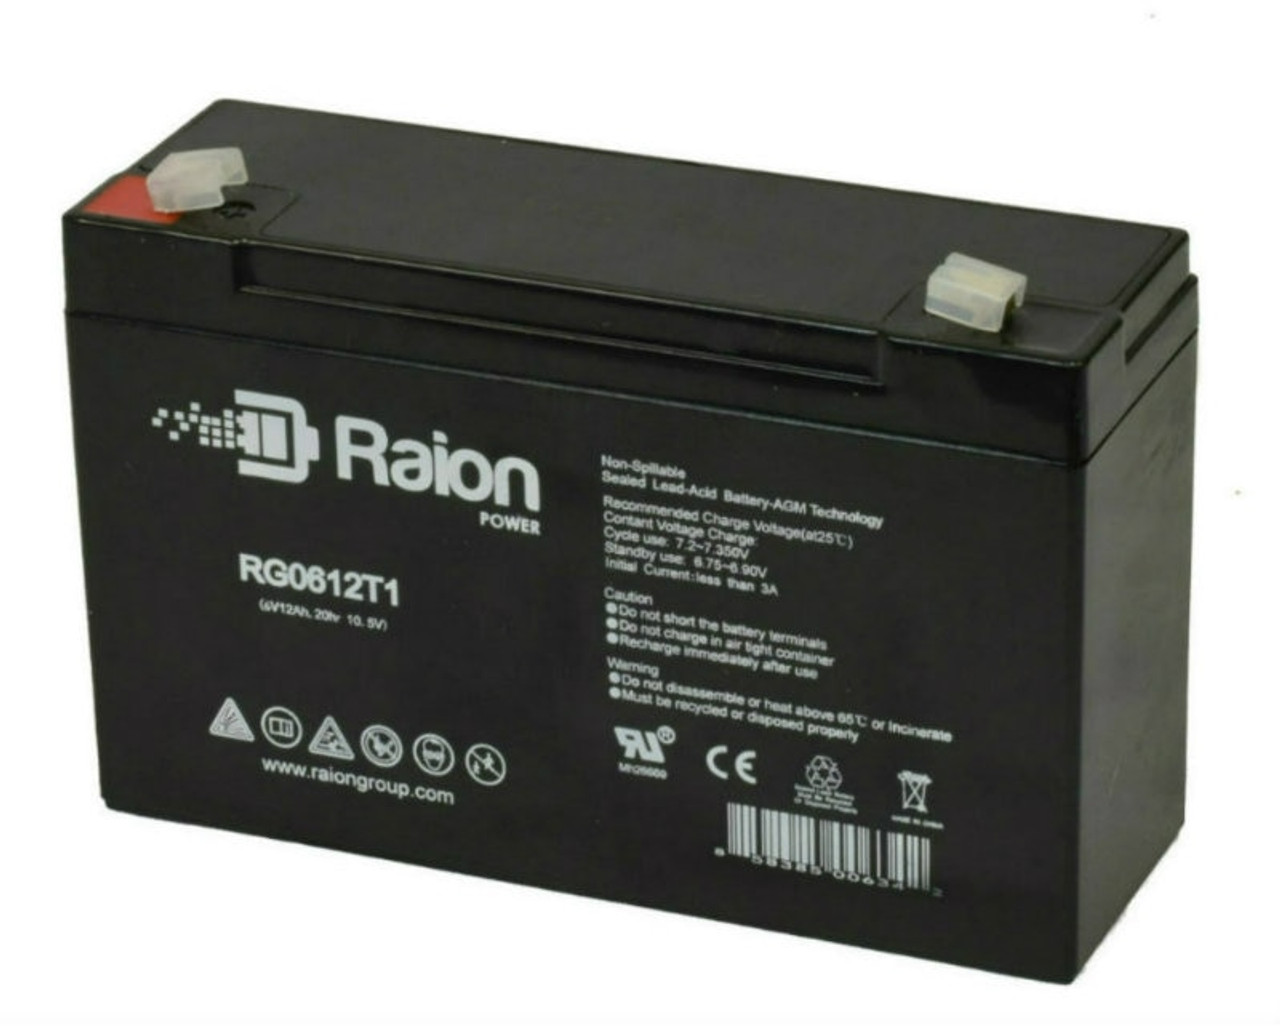 Raion Power RG06120T1 Replacement Battery Pack for Light Alarms CE15AE emergency light